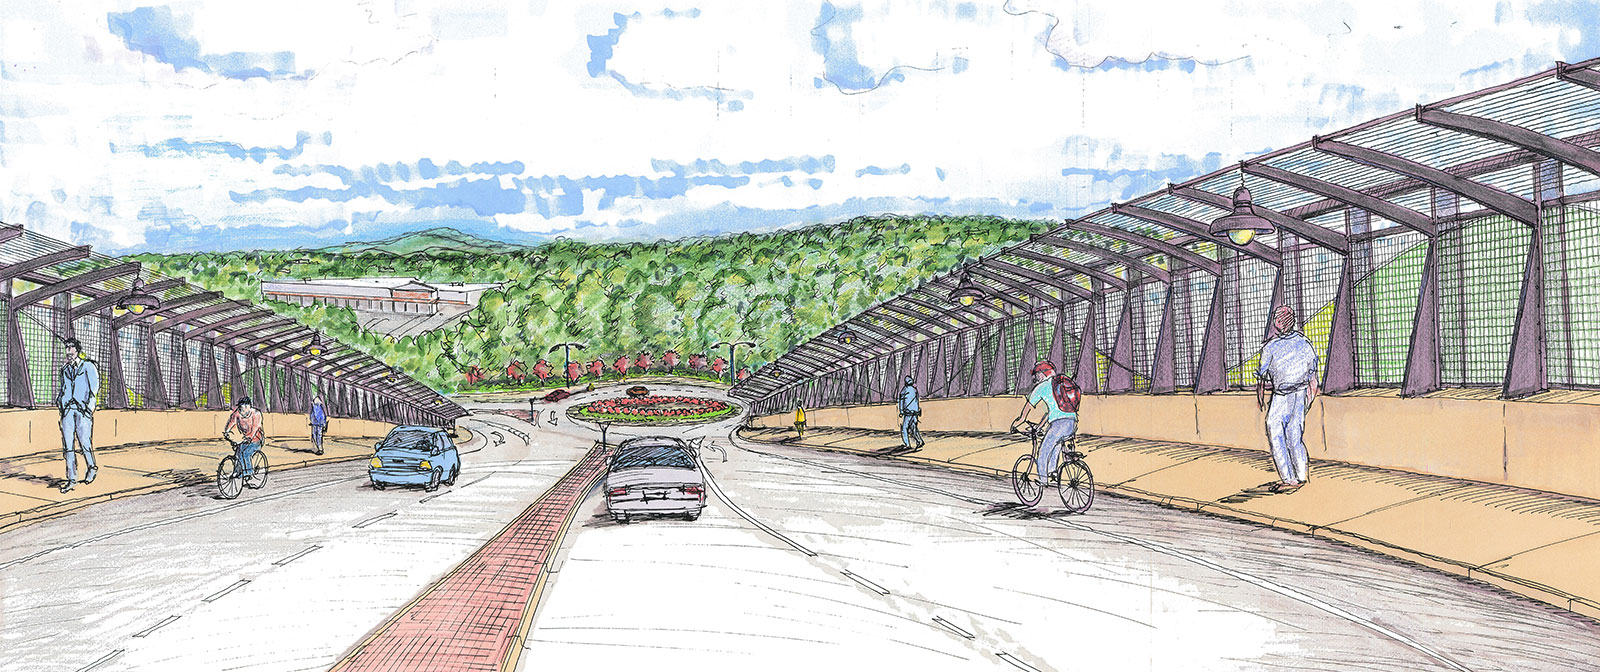 Town Center CID/Cobb County Receives $10.4M Grant for Phase III of South Barrett Reliever